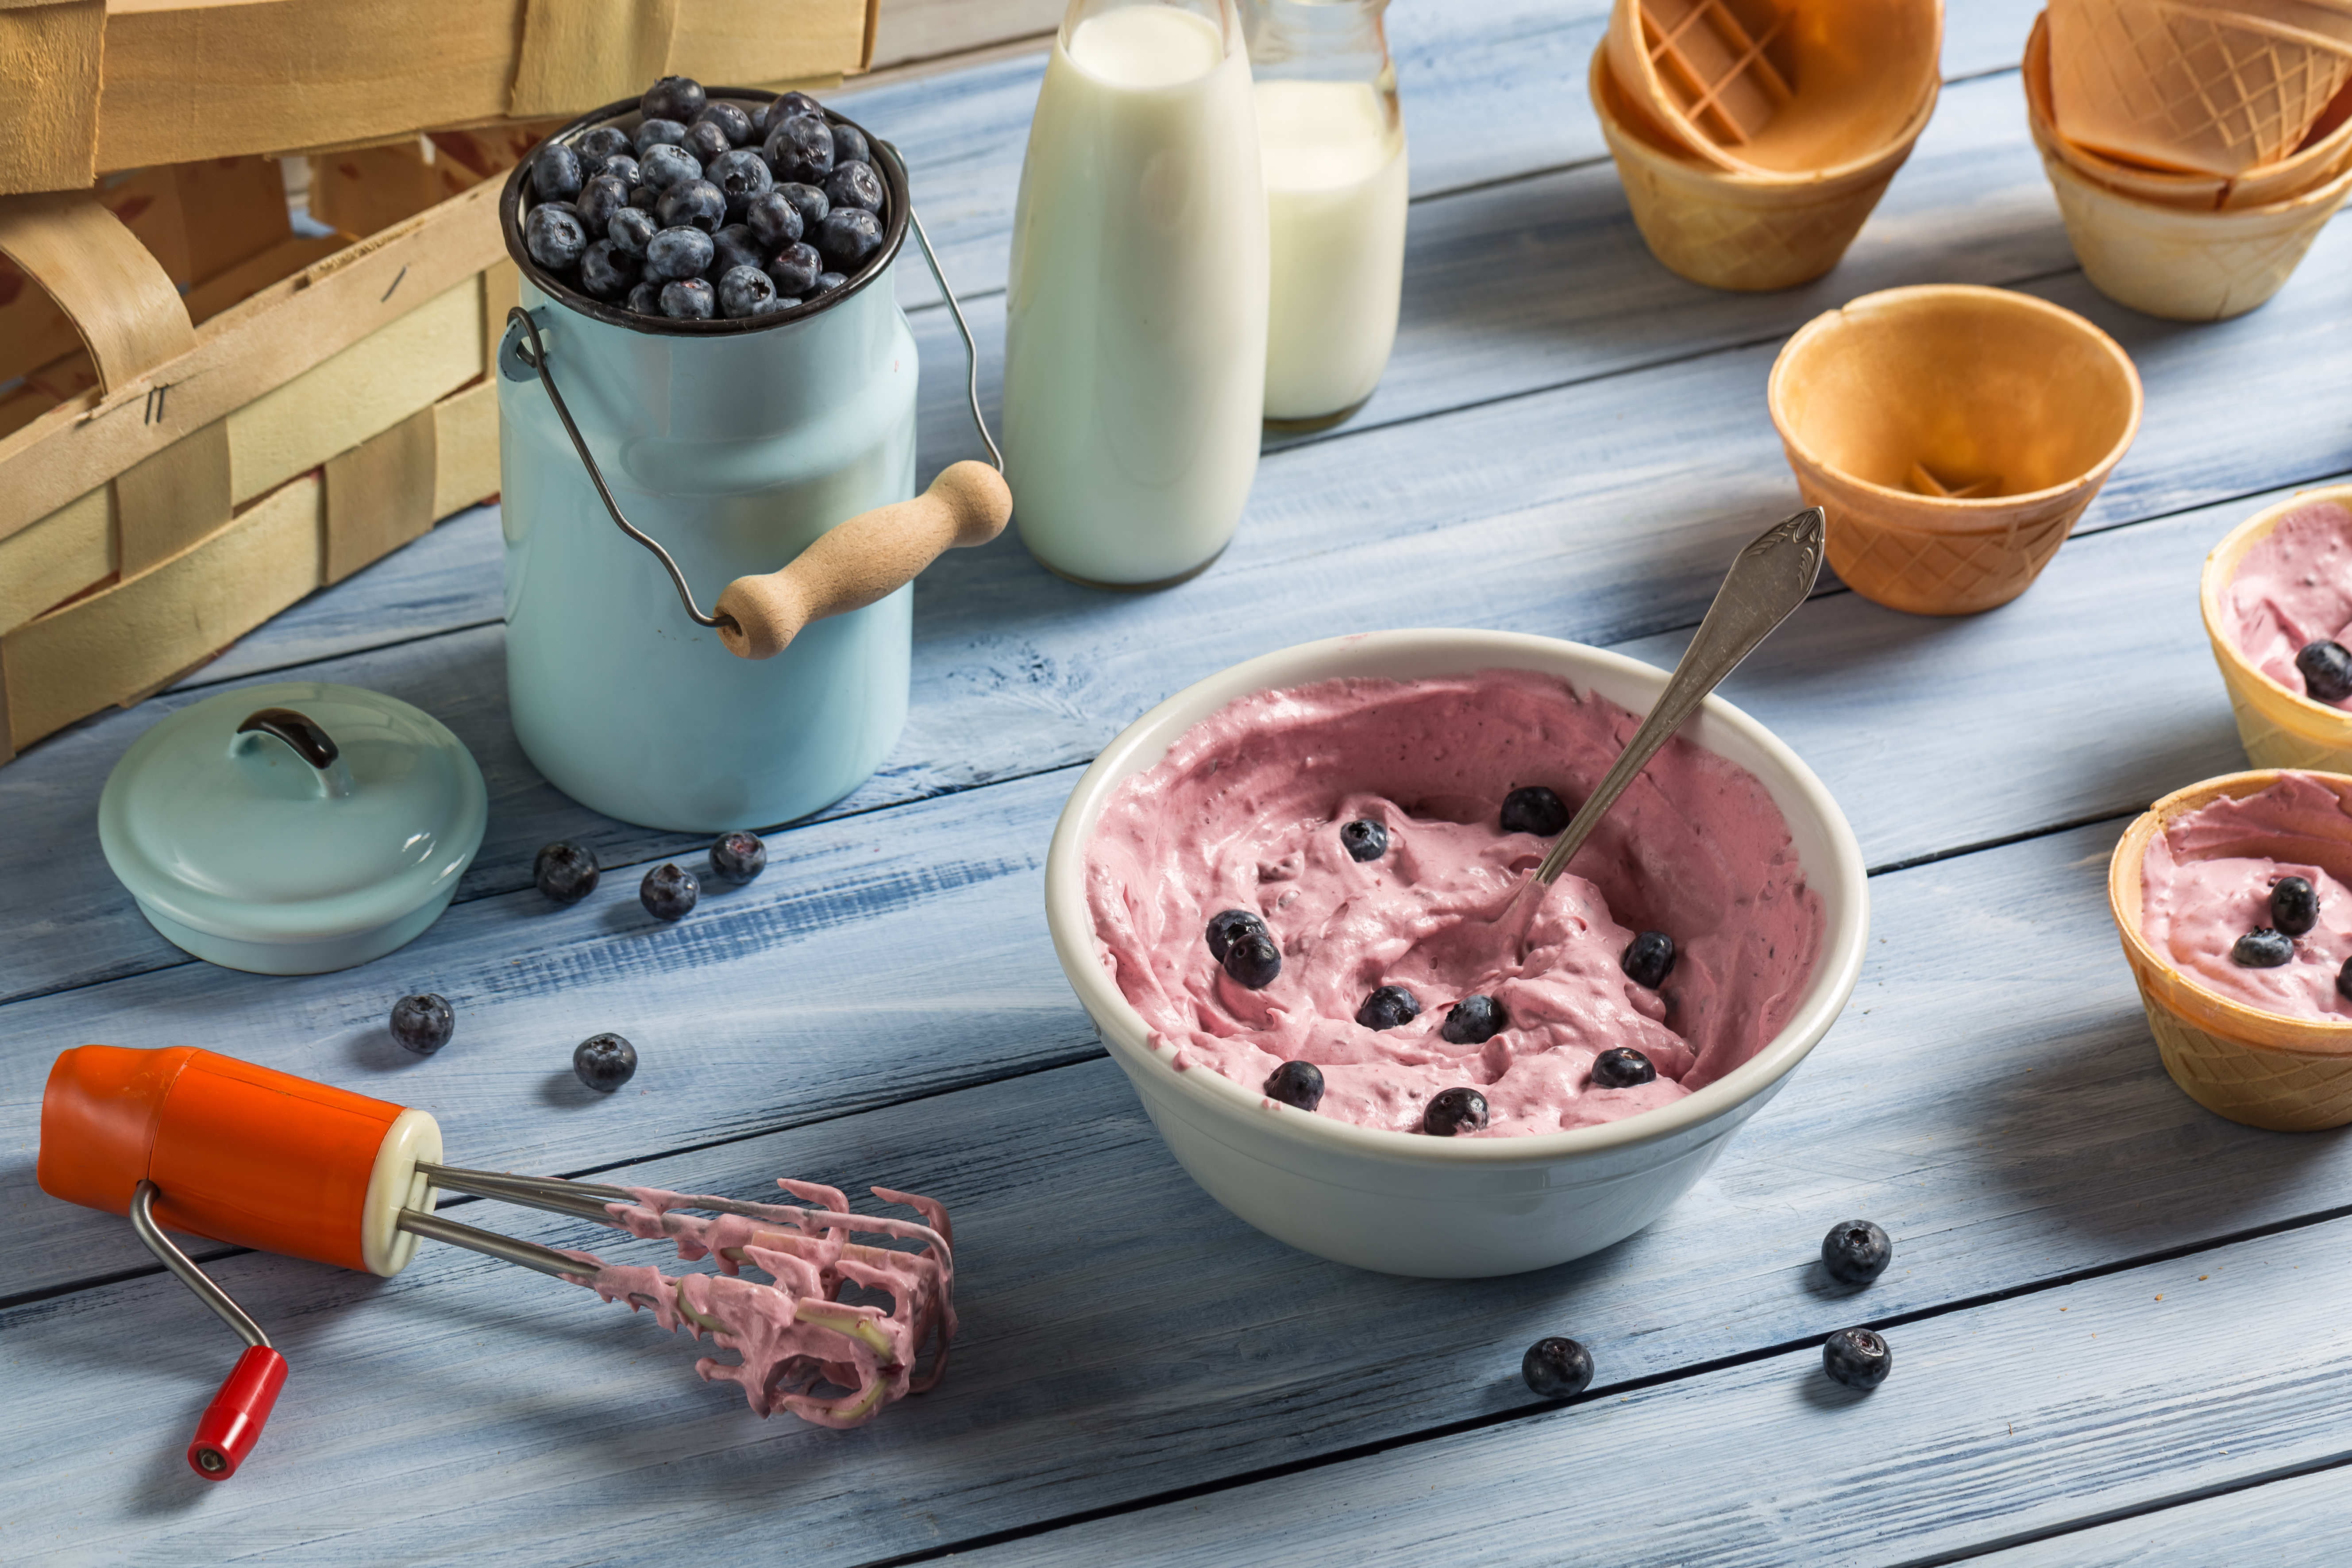 Homemade Hand Mixed Blueberry Ice Cream